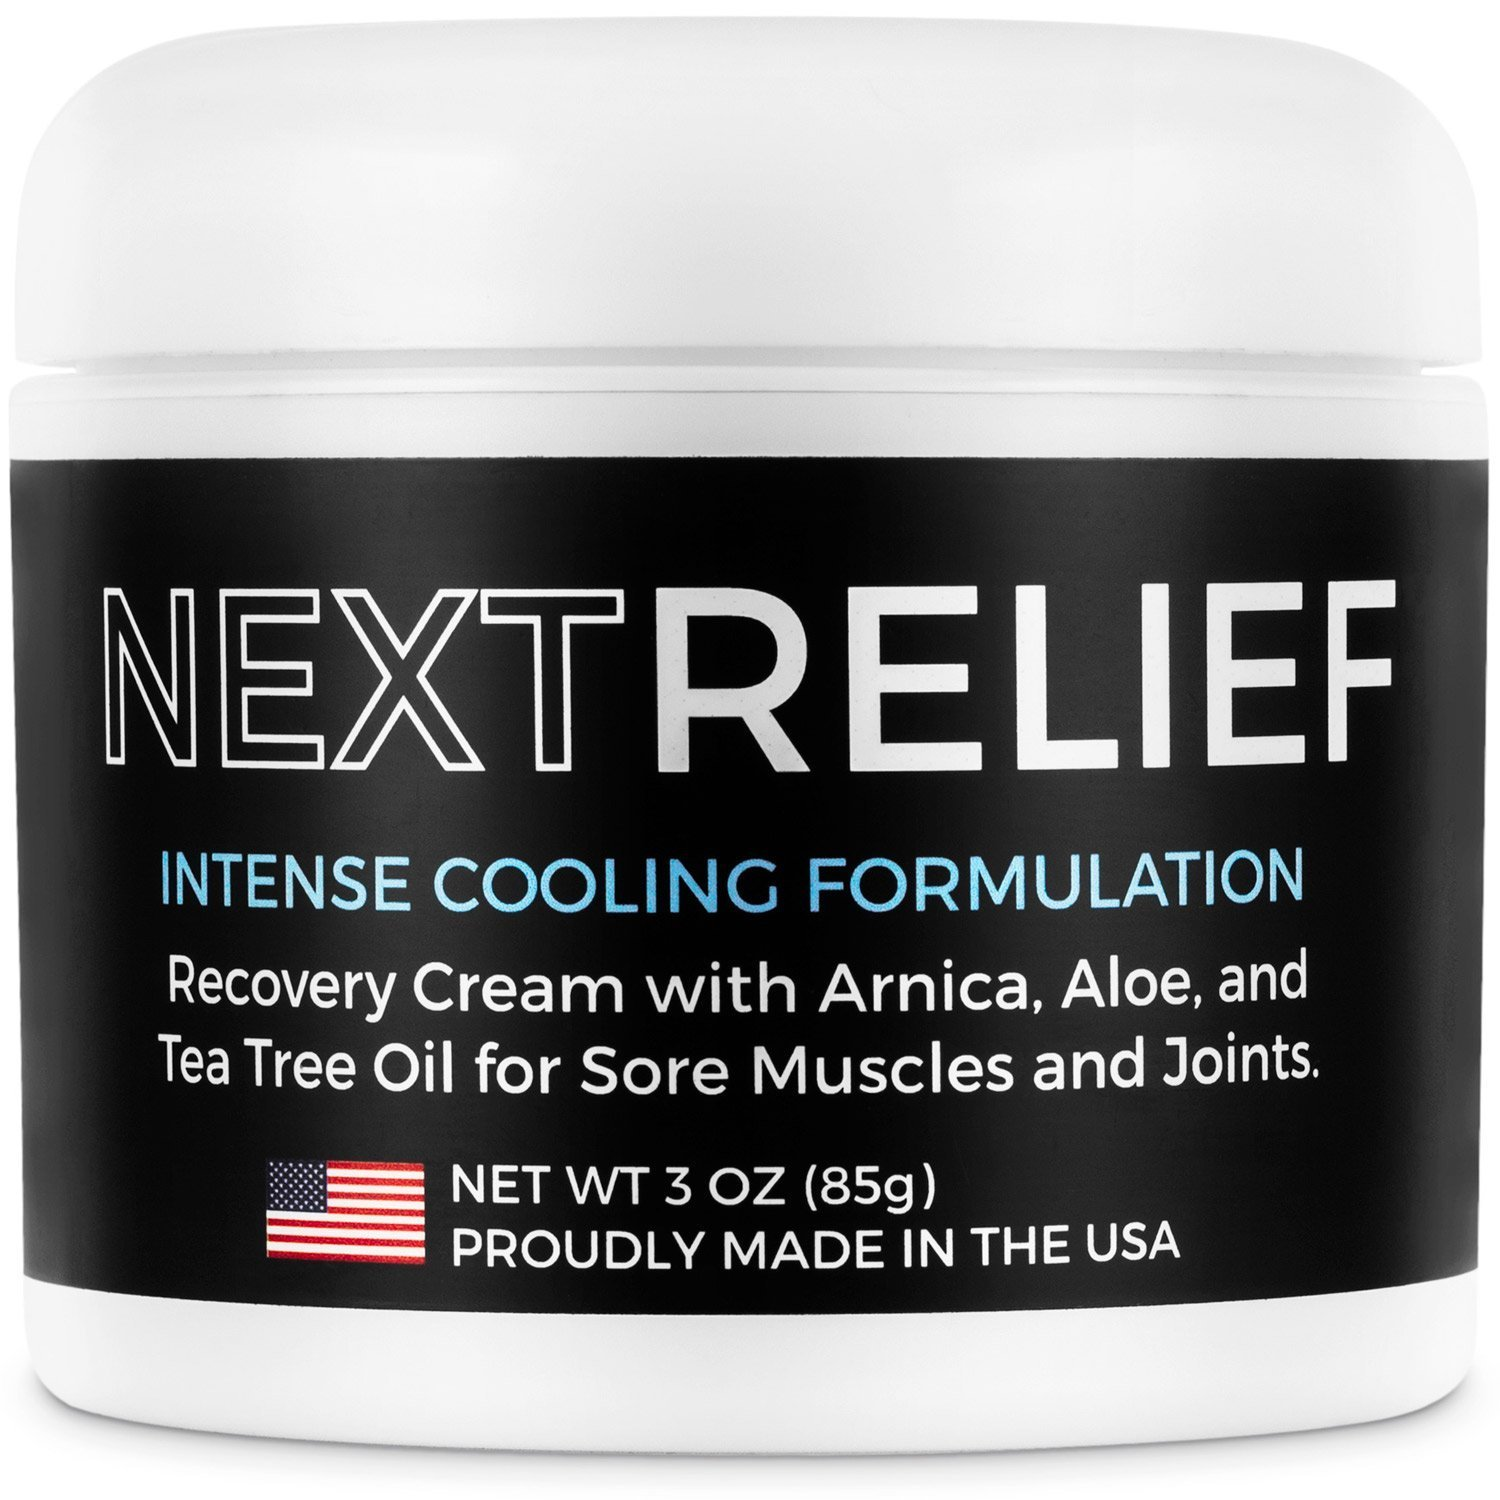 NextRelief Cooling Pain Relief Cream - [3 Oz] USA Made with Arnica, Aloe, Tea Tree Oil, & More - Feels Great on Muscles and Joints - Use for Soreness, Aches, Inflammation, Arthritis, Sciatica, & More